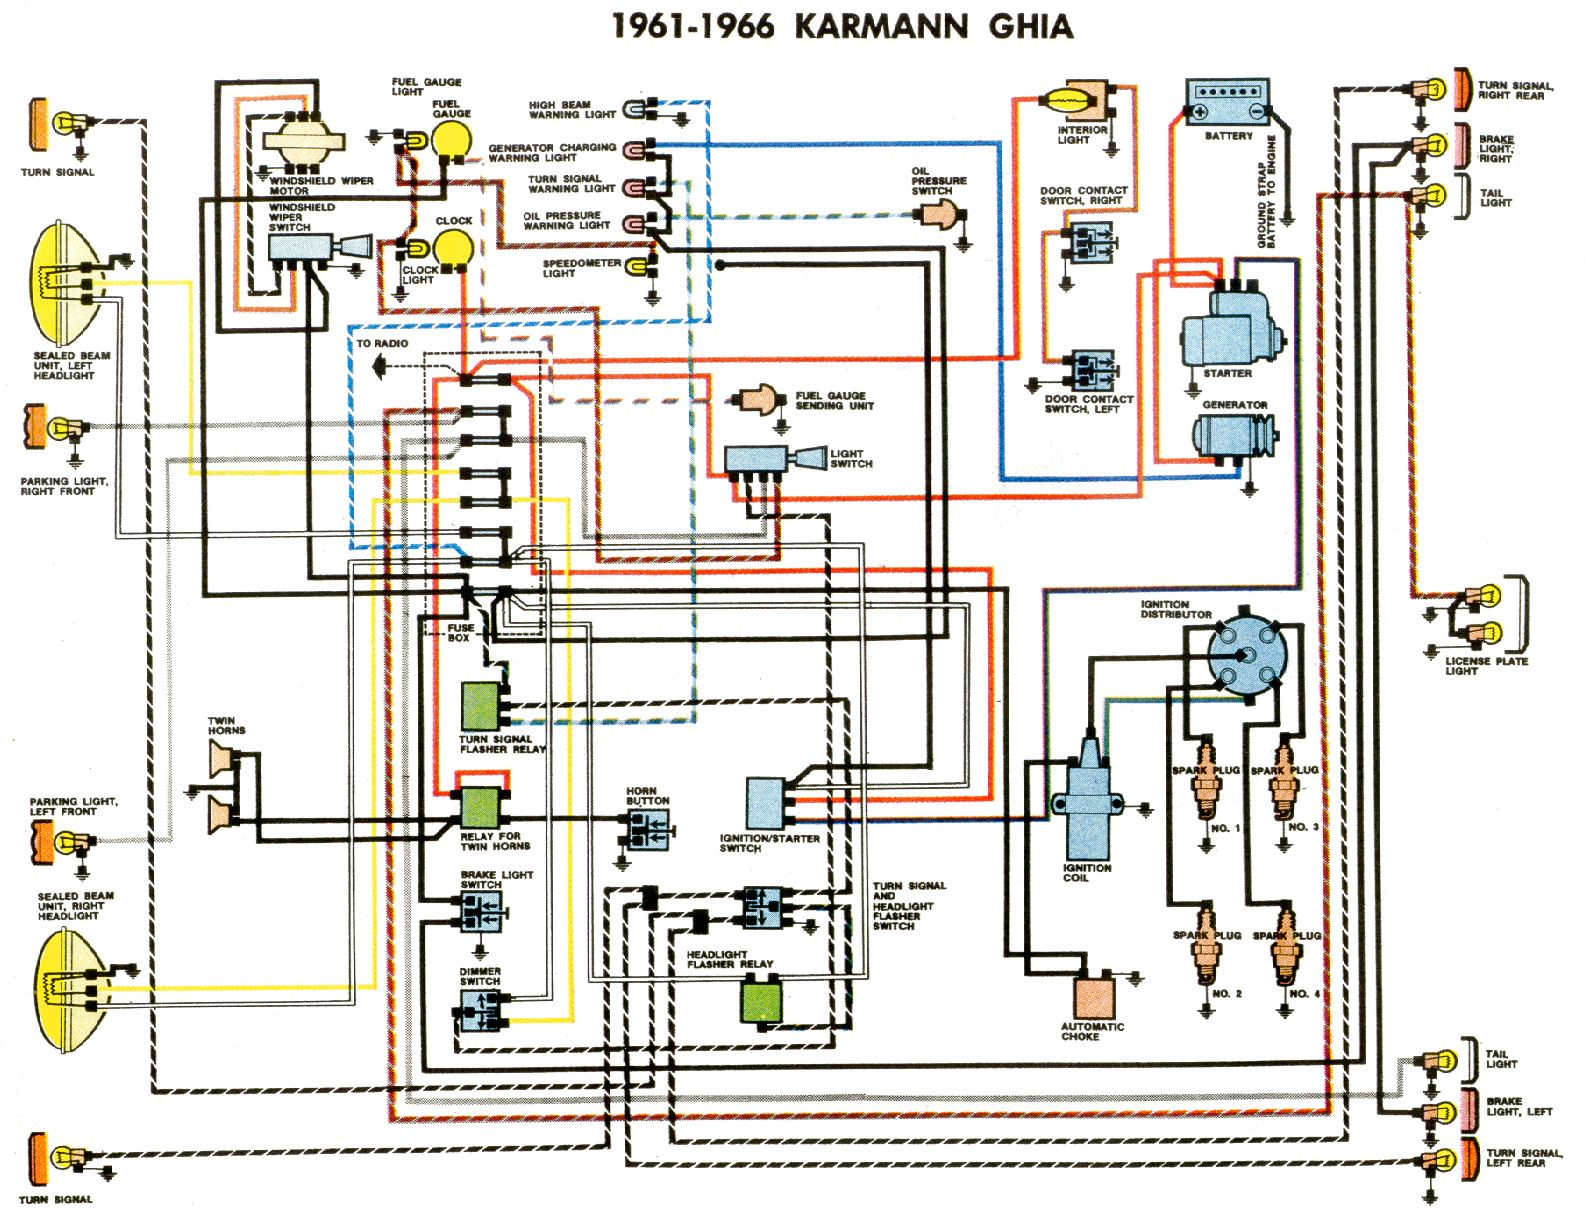 585010?resize\\\\\\\\\\\\\\\=665%2C513\\\\\\\\\\\\\\\&ssl\\\\\\\\\\\\\\\=1 amazing 914 wiring diagram photos wiring schematic tvservice us rotax 912 wiring schematic at fashall.co